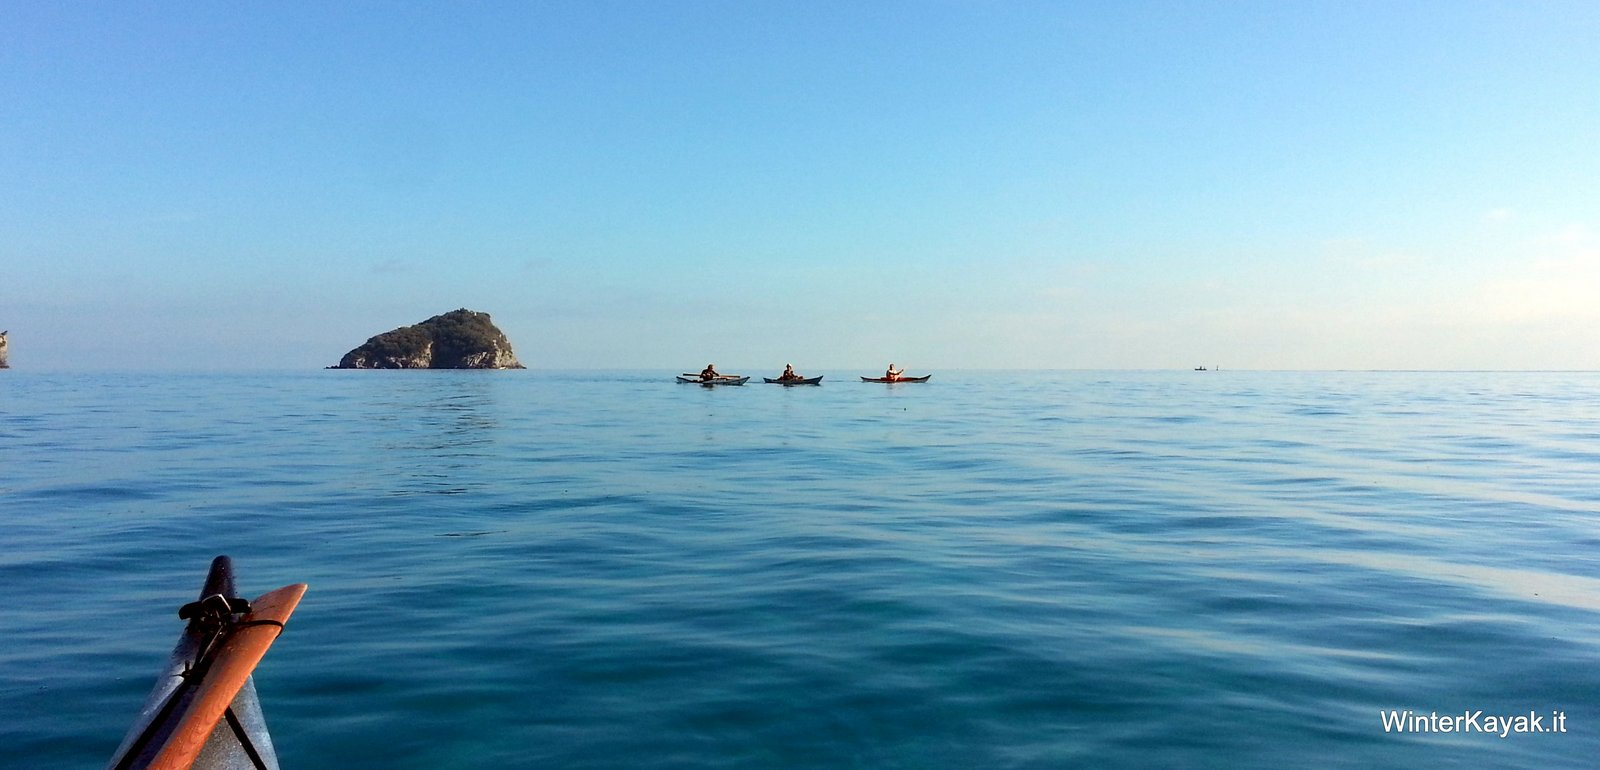 inverno-in-kayak-in-liguria-a-bergeggi1